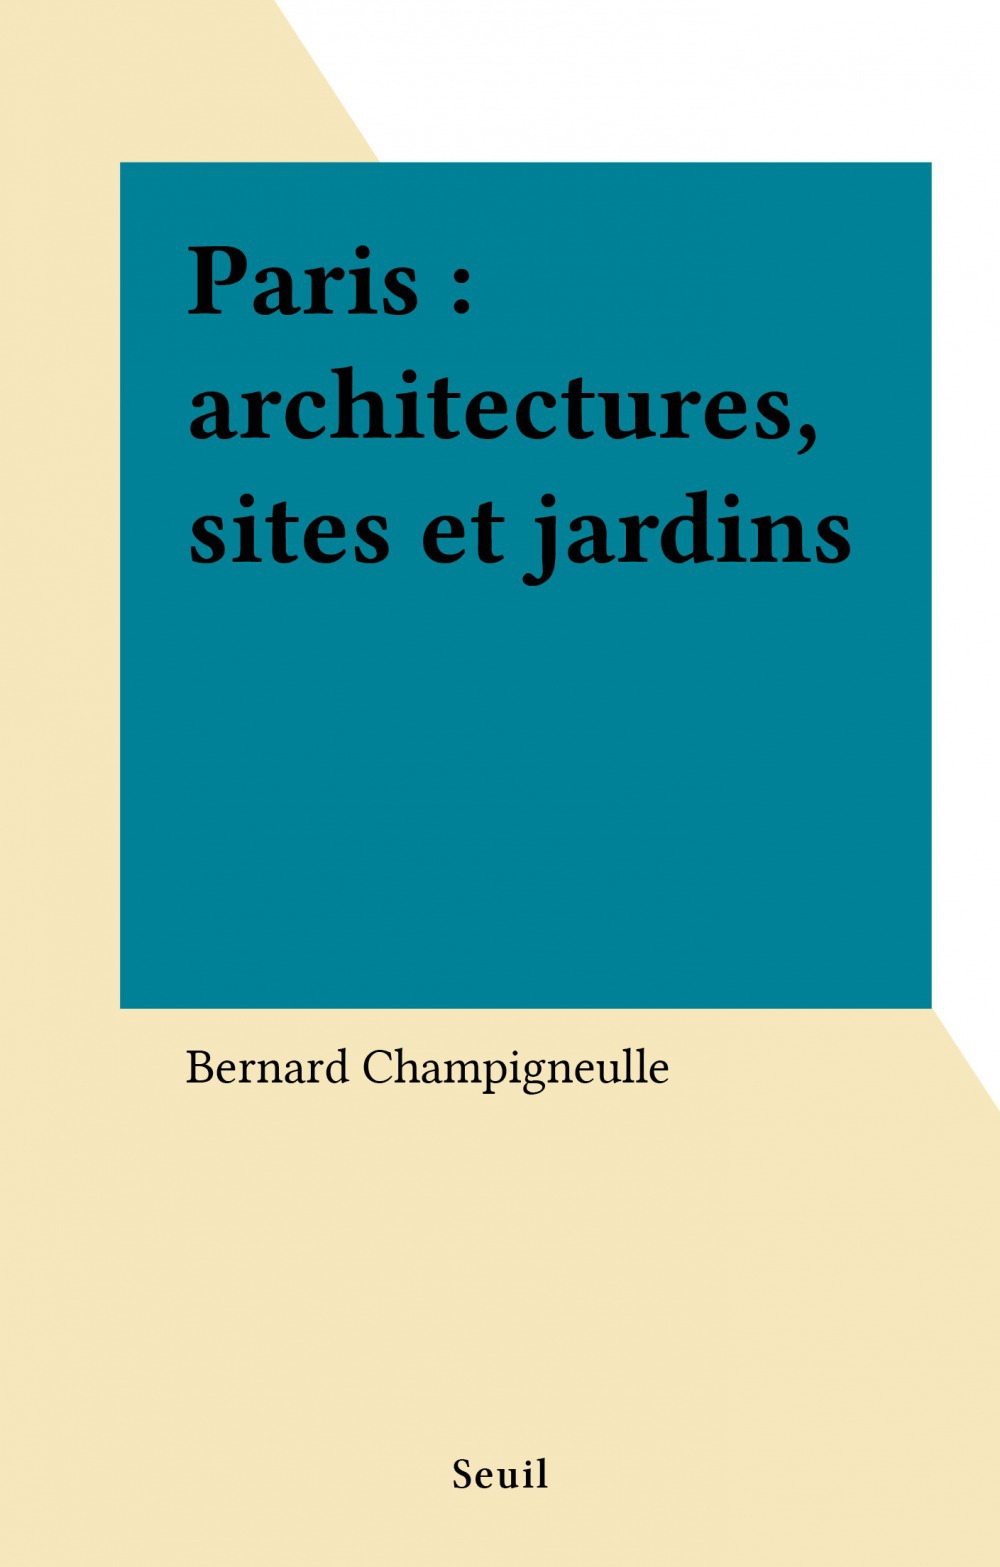 Paris : architectures, sites et jardins